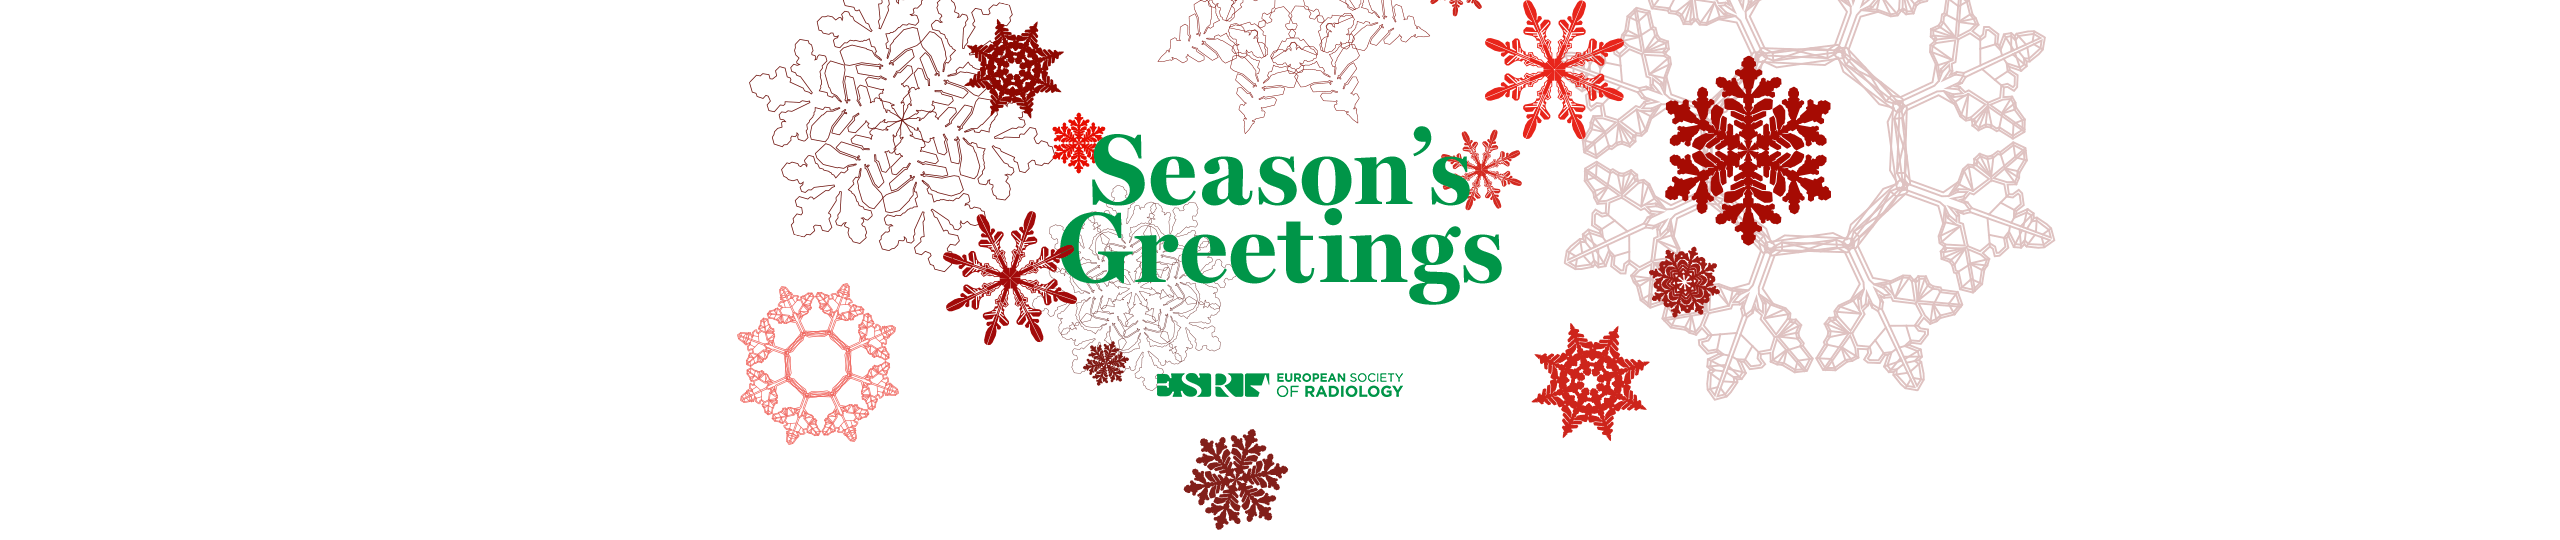 Season's Greetings 2018